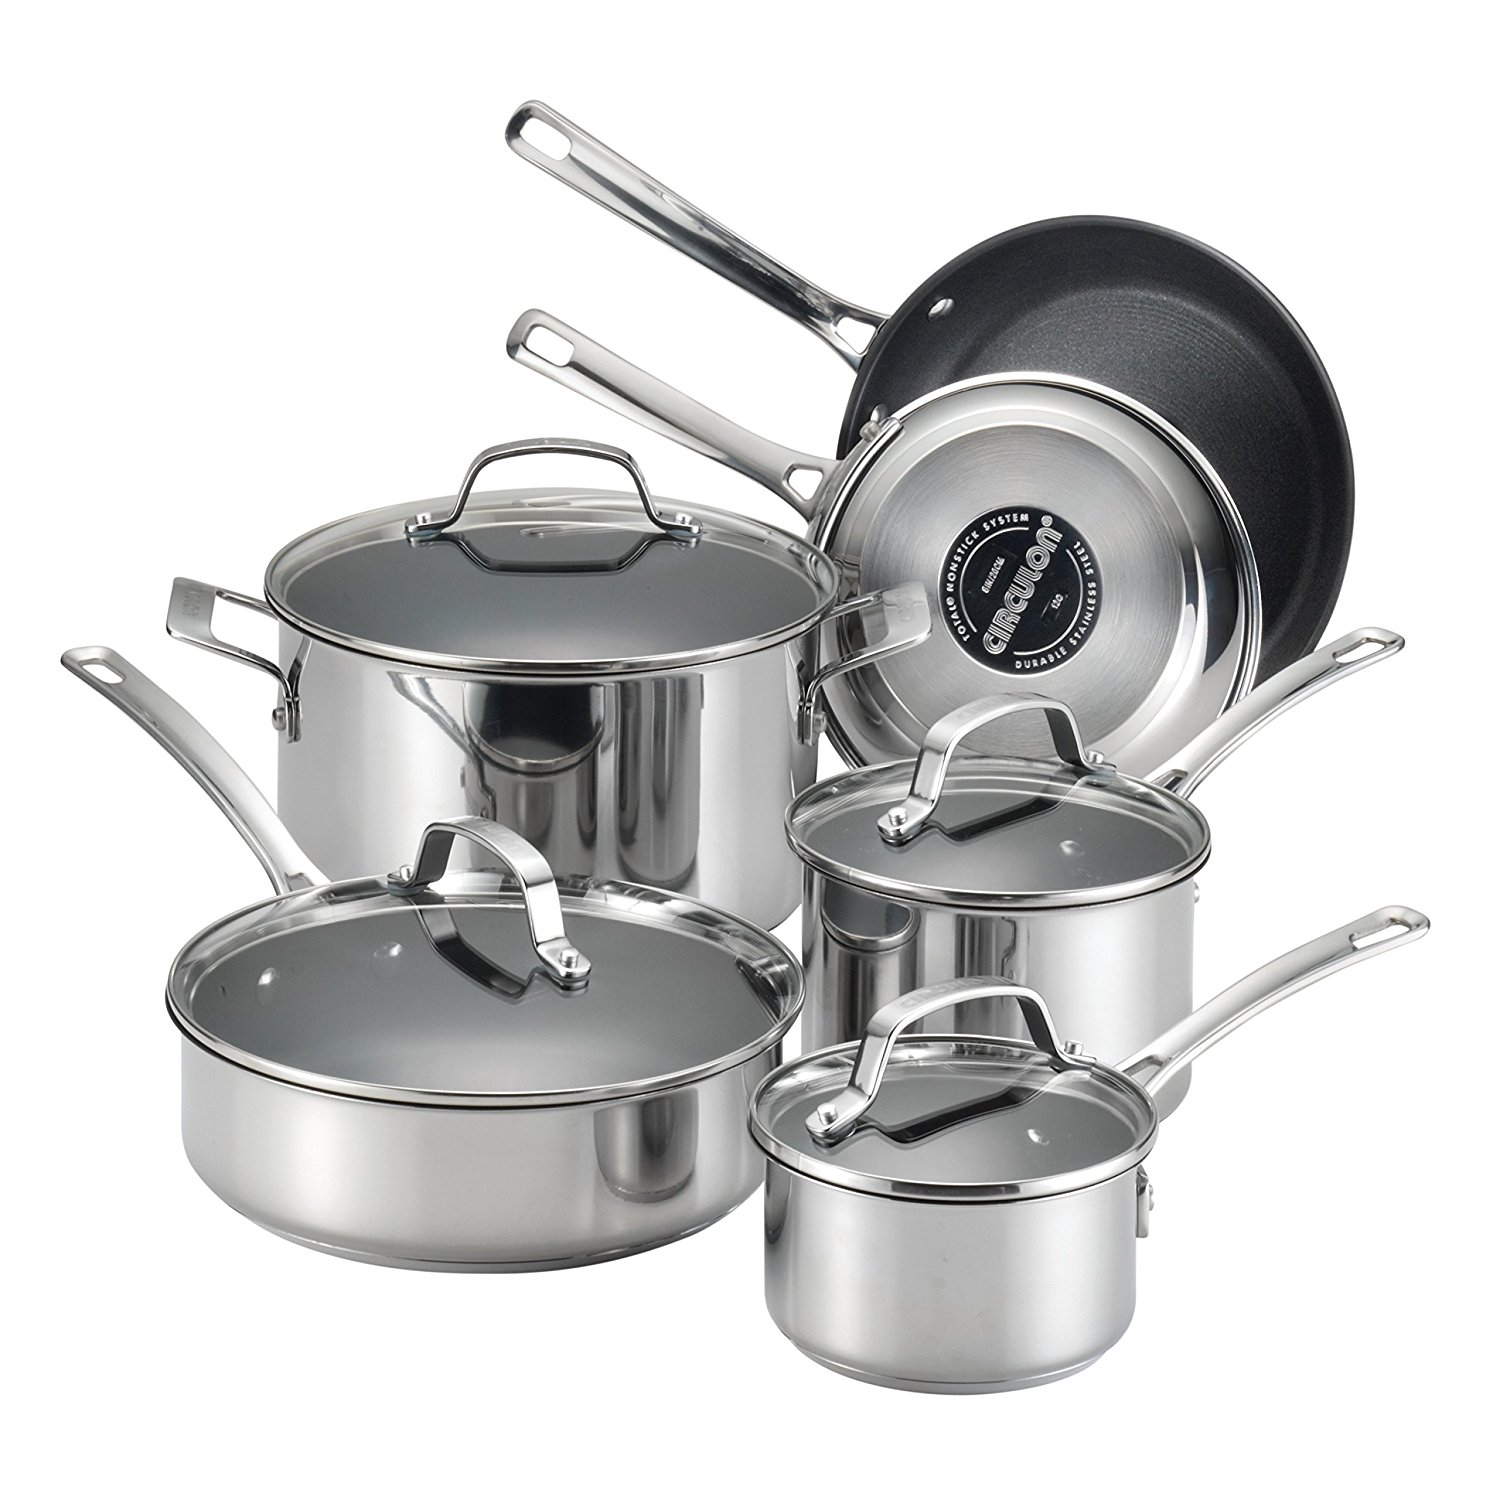 Circulon Genesis Cookware Set.jpg